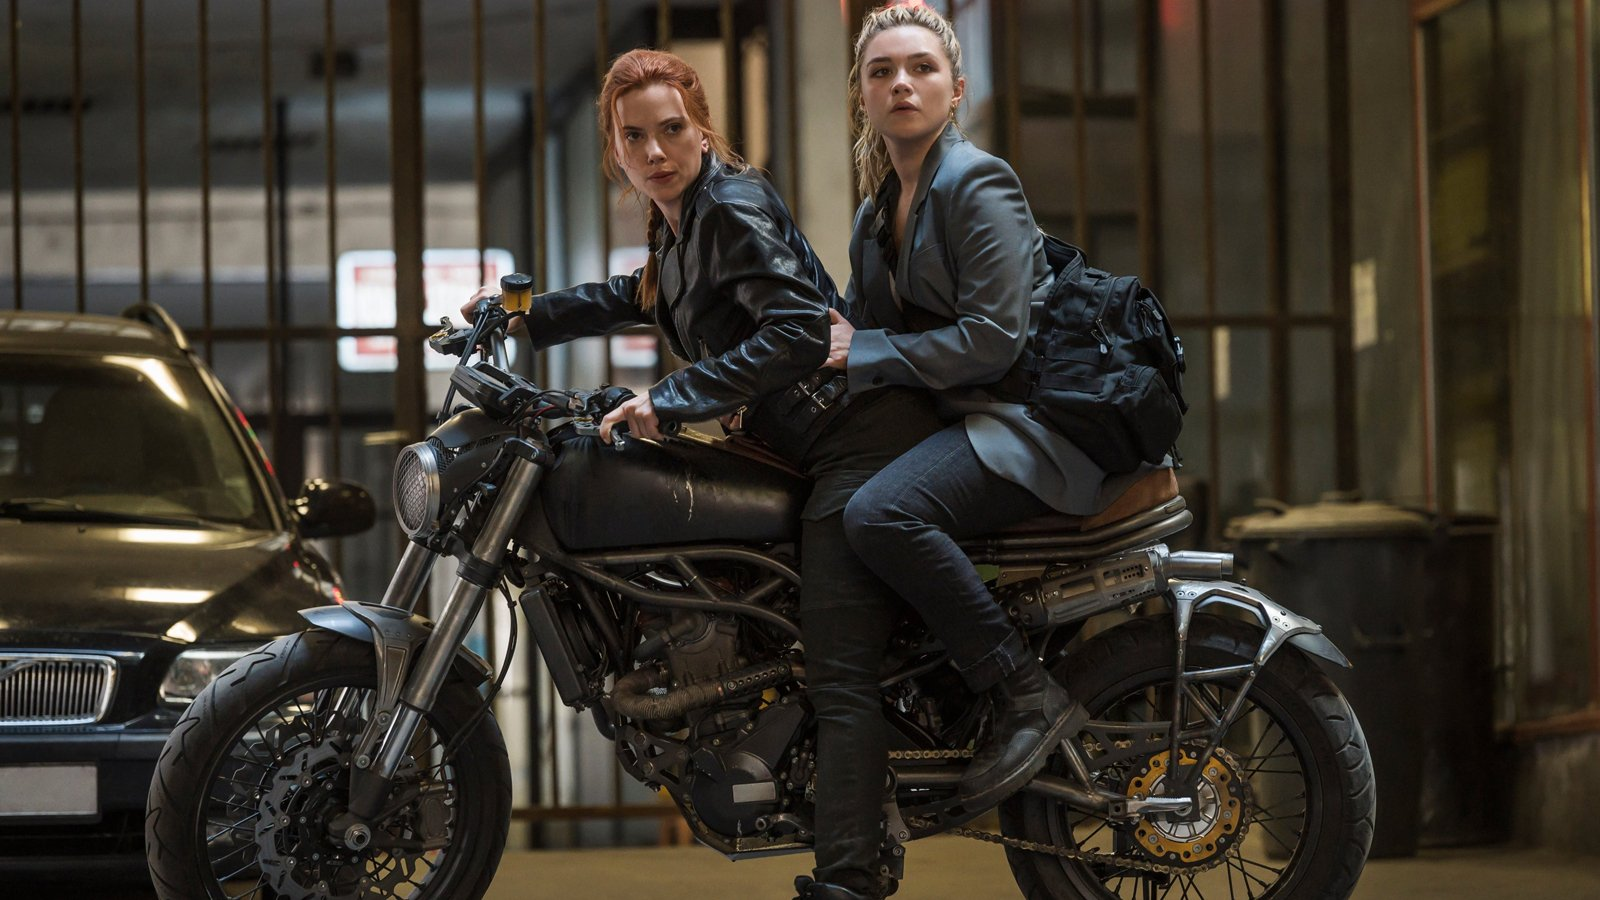 Exclusive 'Black Widow' Video Shows Off Heart-Pounding Action Sequence